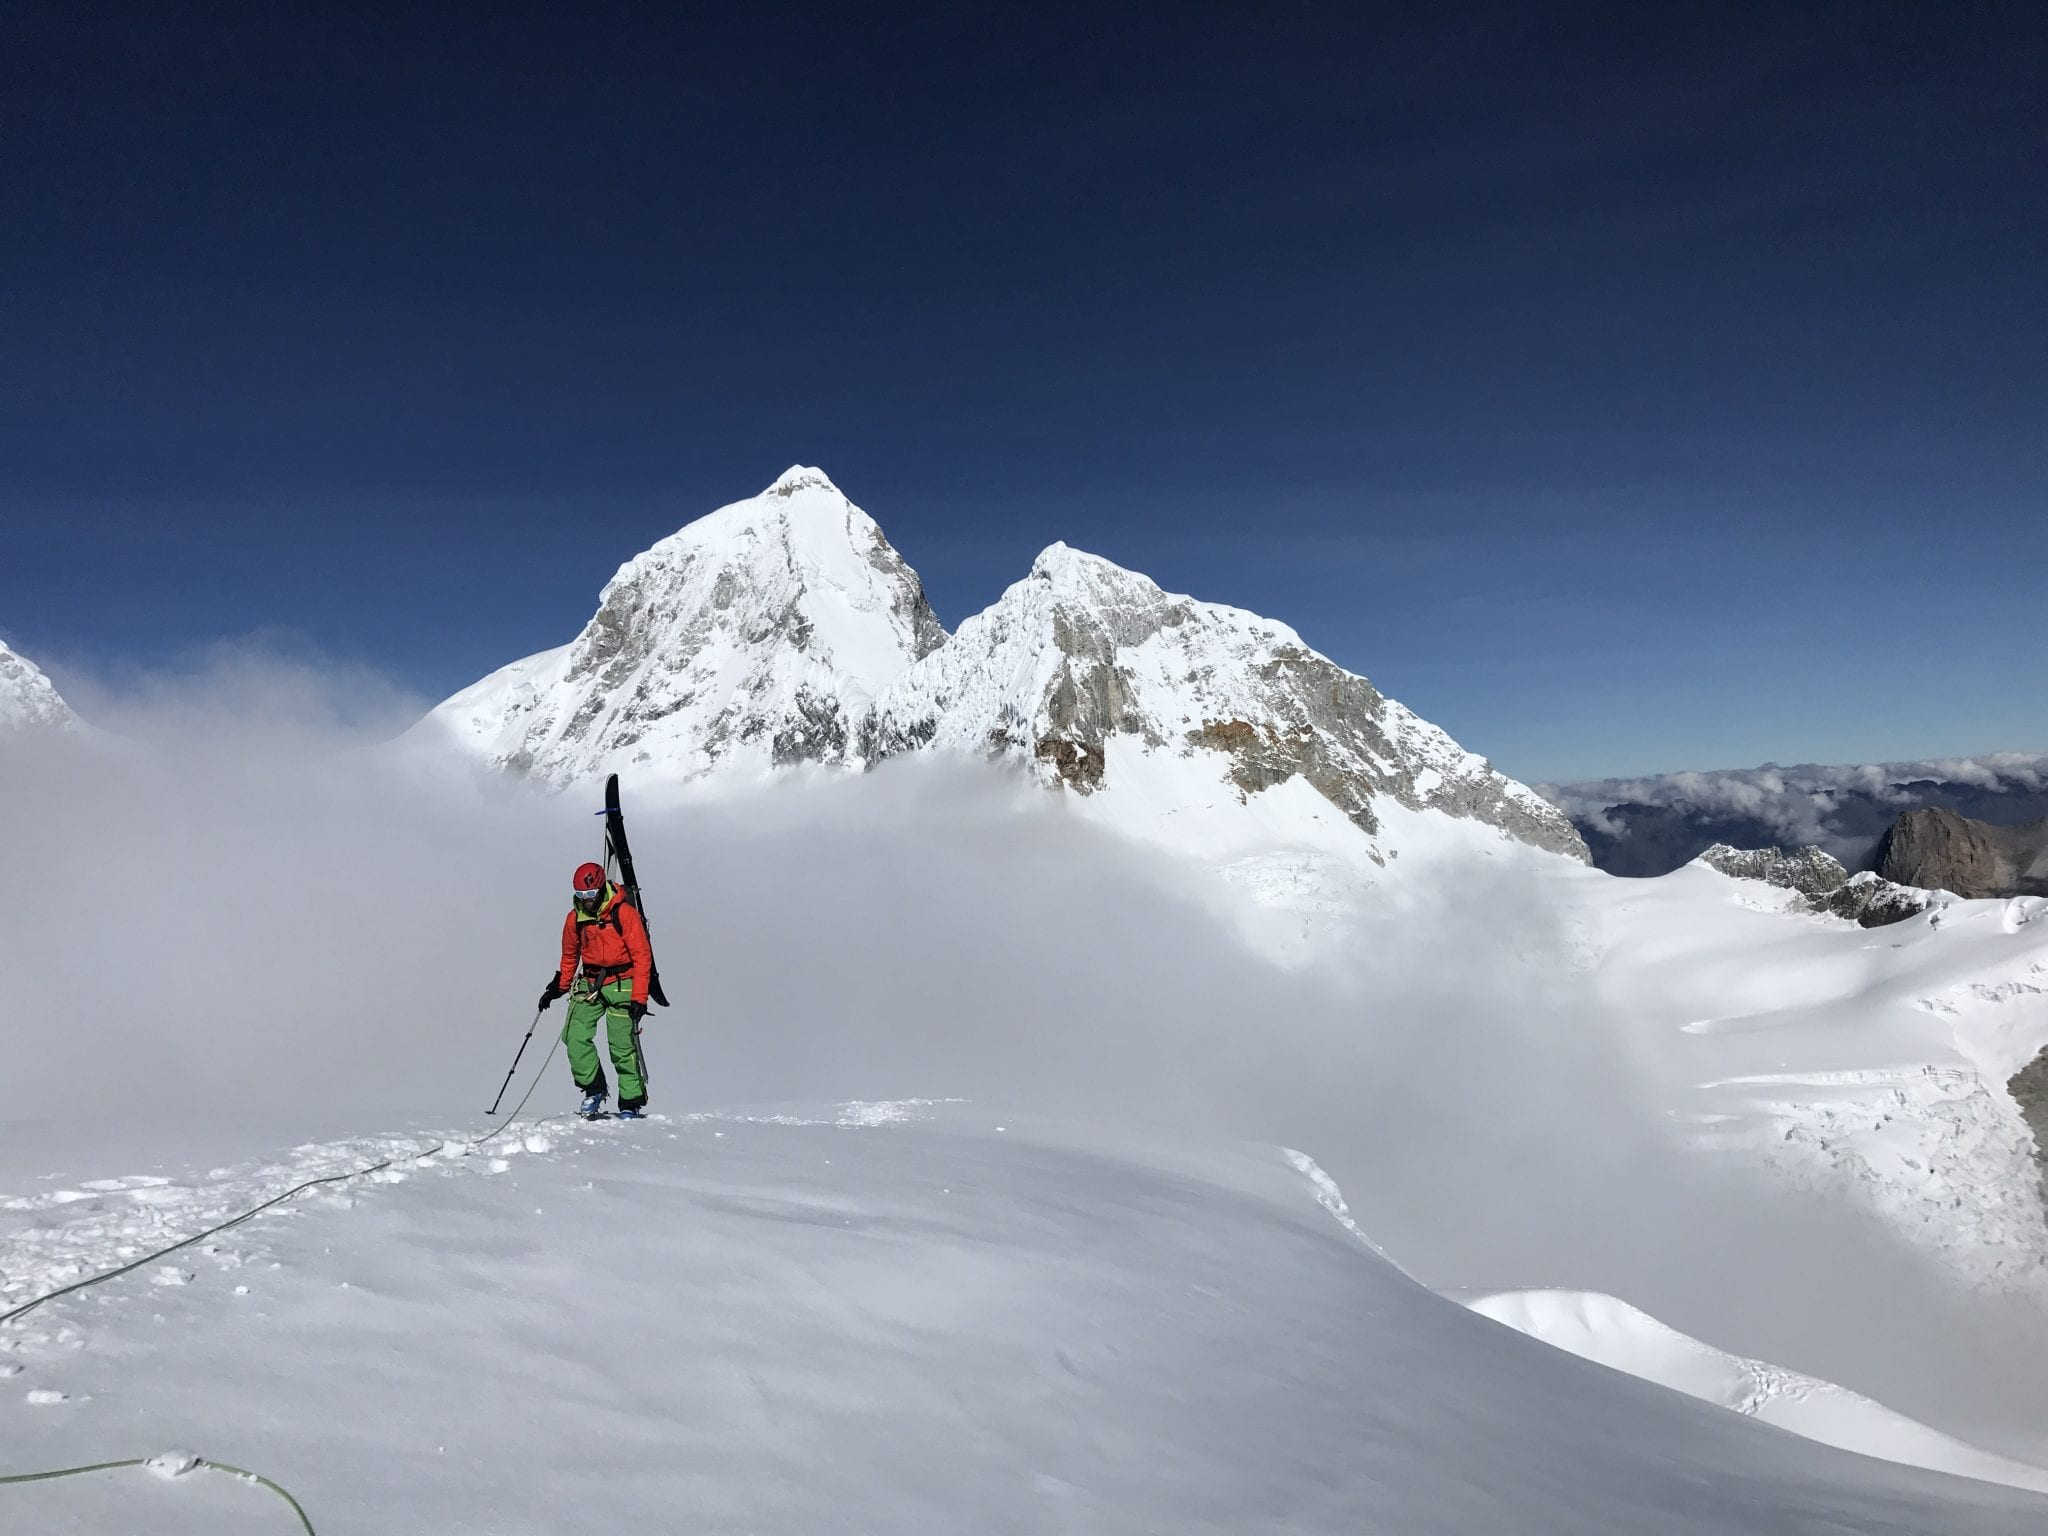 Peru: High Altitude Ski Mountaineering